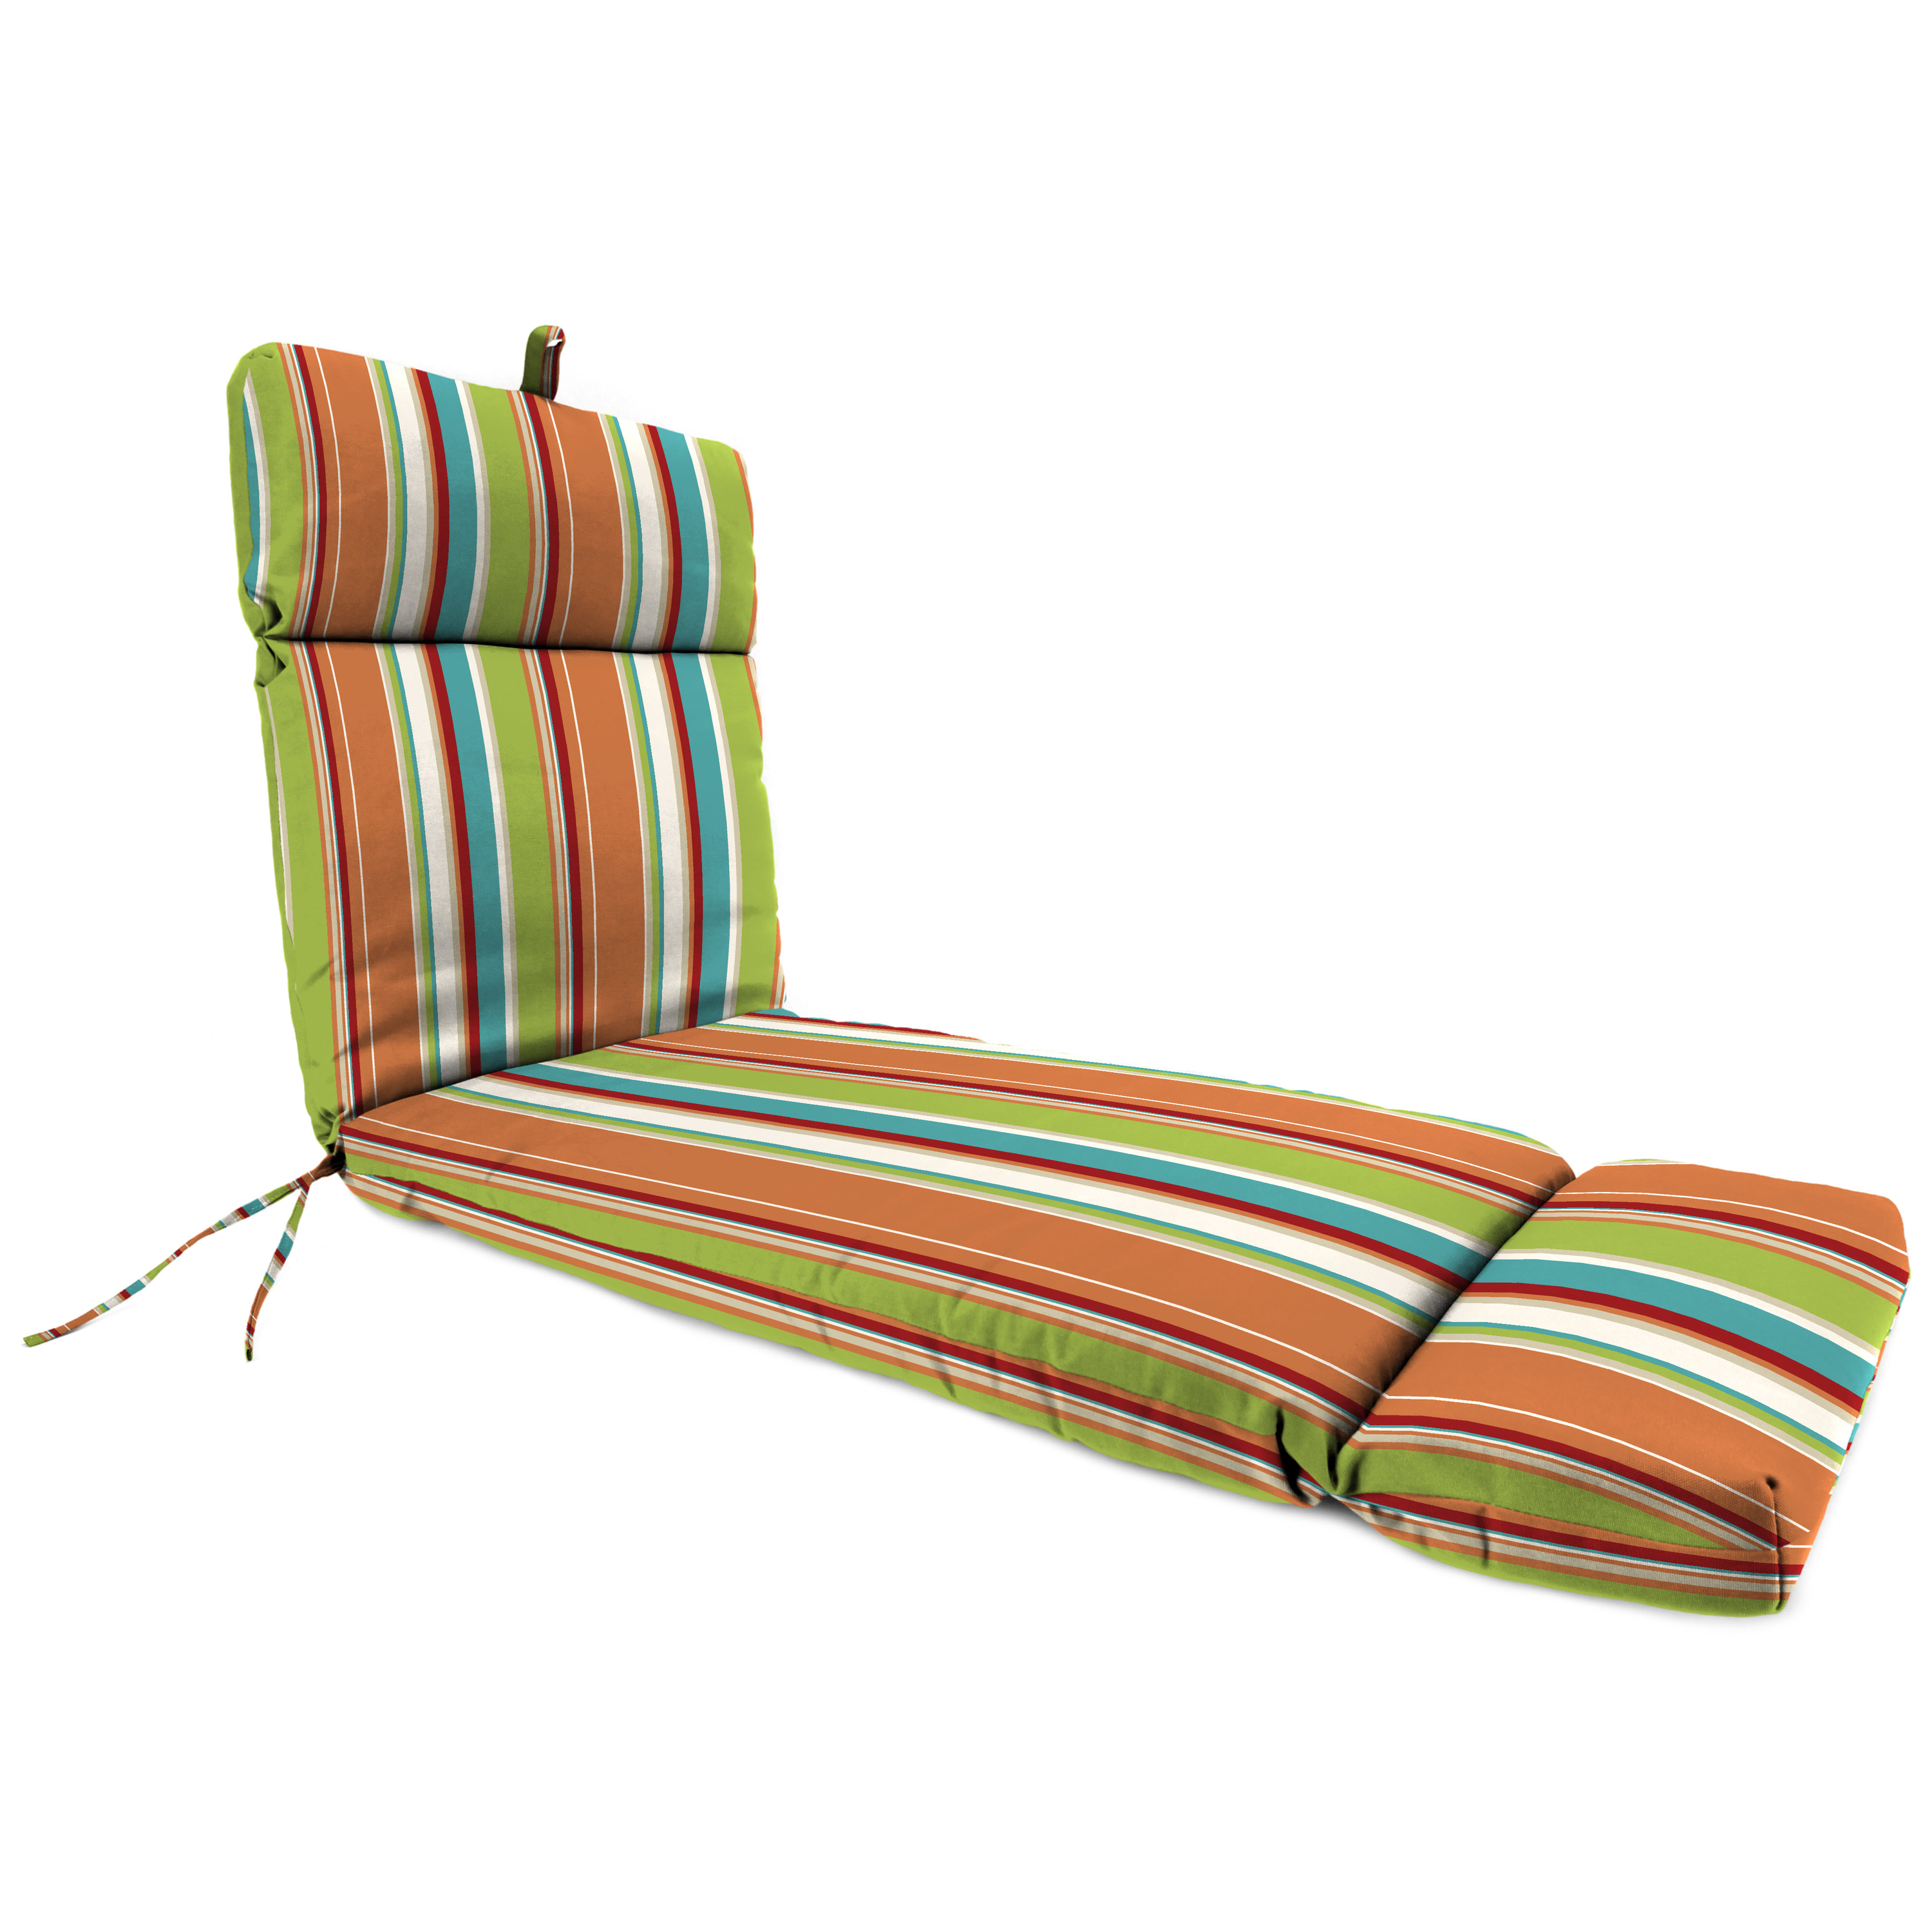 Jordan Manufacturing Outdoor French Edge Chaise Lounge Cushion, Covert Breeze